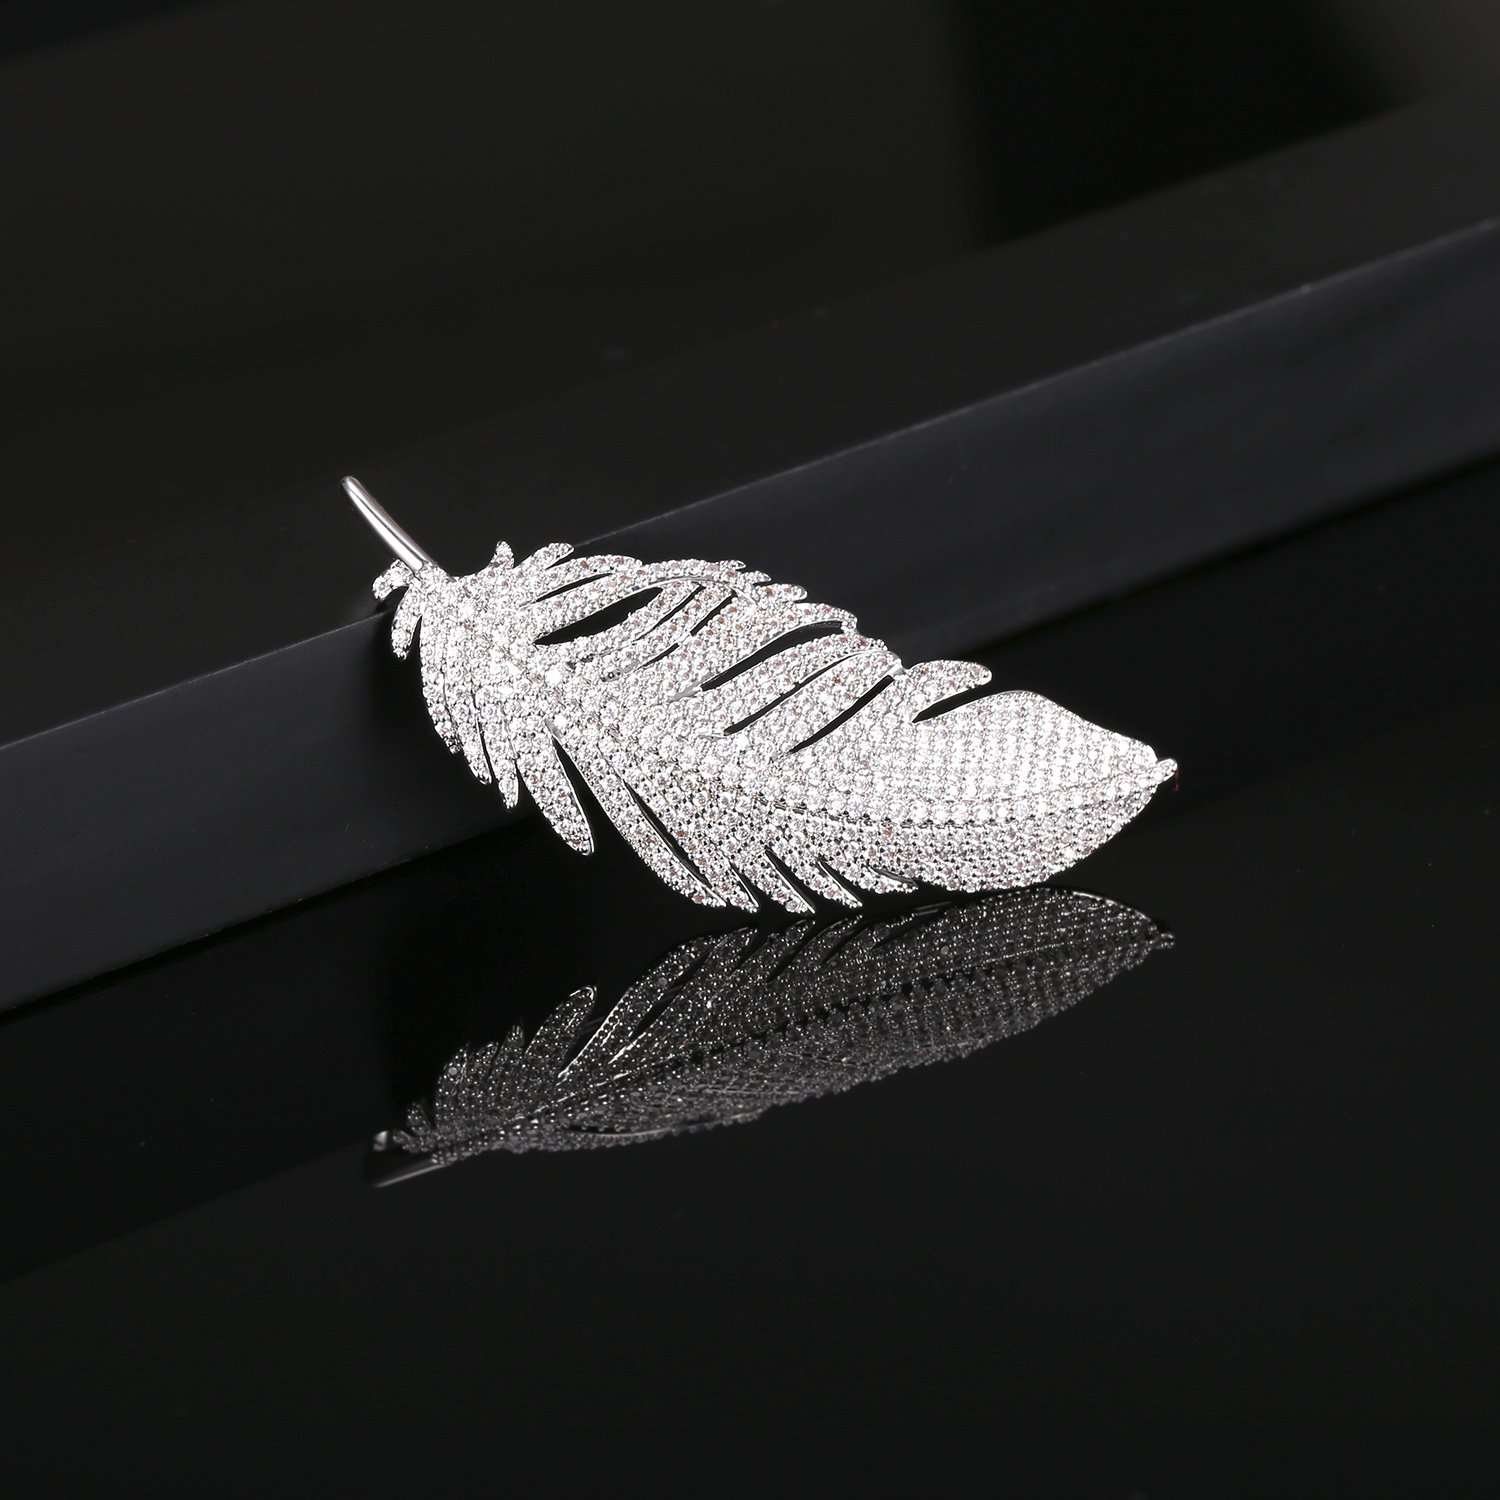 LILIE&WHITE White Gold Plated Cubic Zirconia Paved Feather Brooch Pin Mother's Day Gift Leaf Shape by LILIE&WHITE (Image #4)